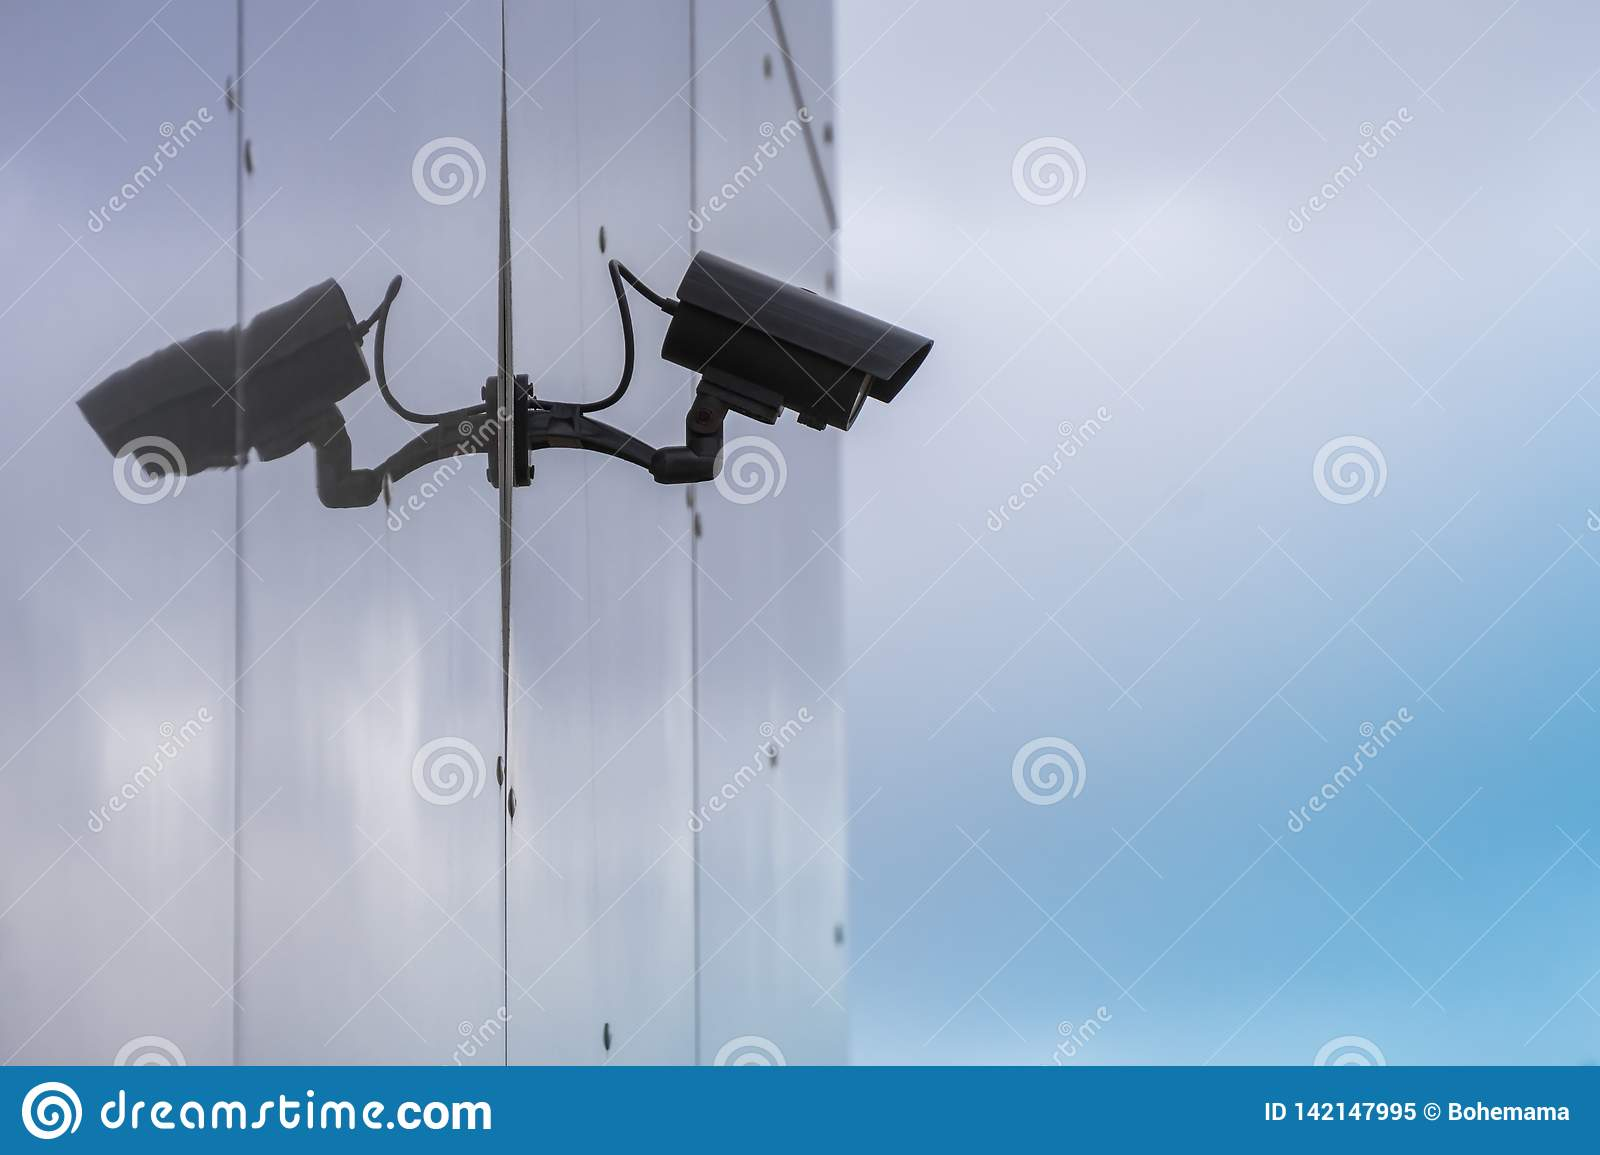 CCTV security camera on modern glass building wall with reflection